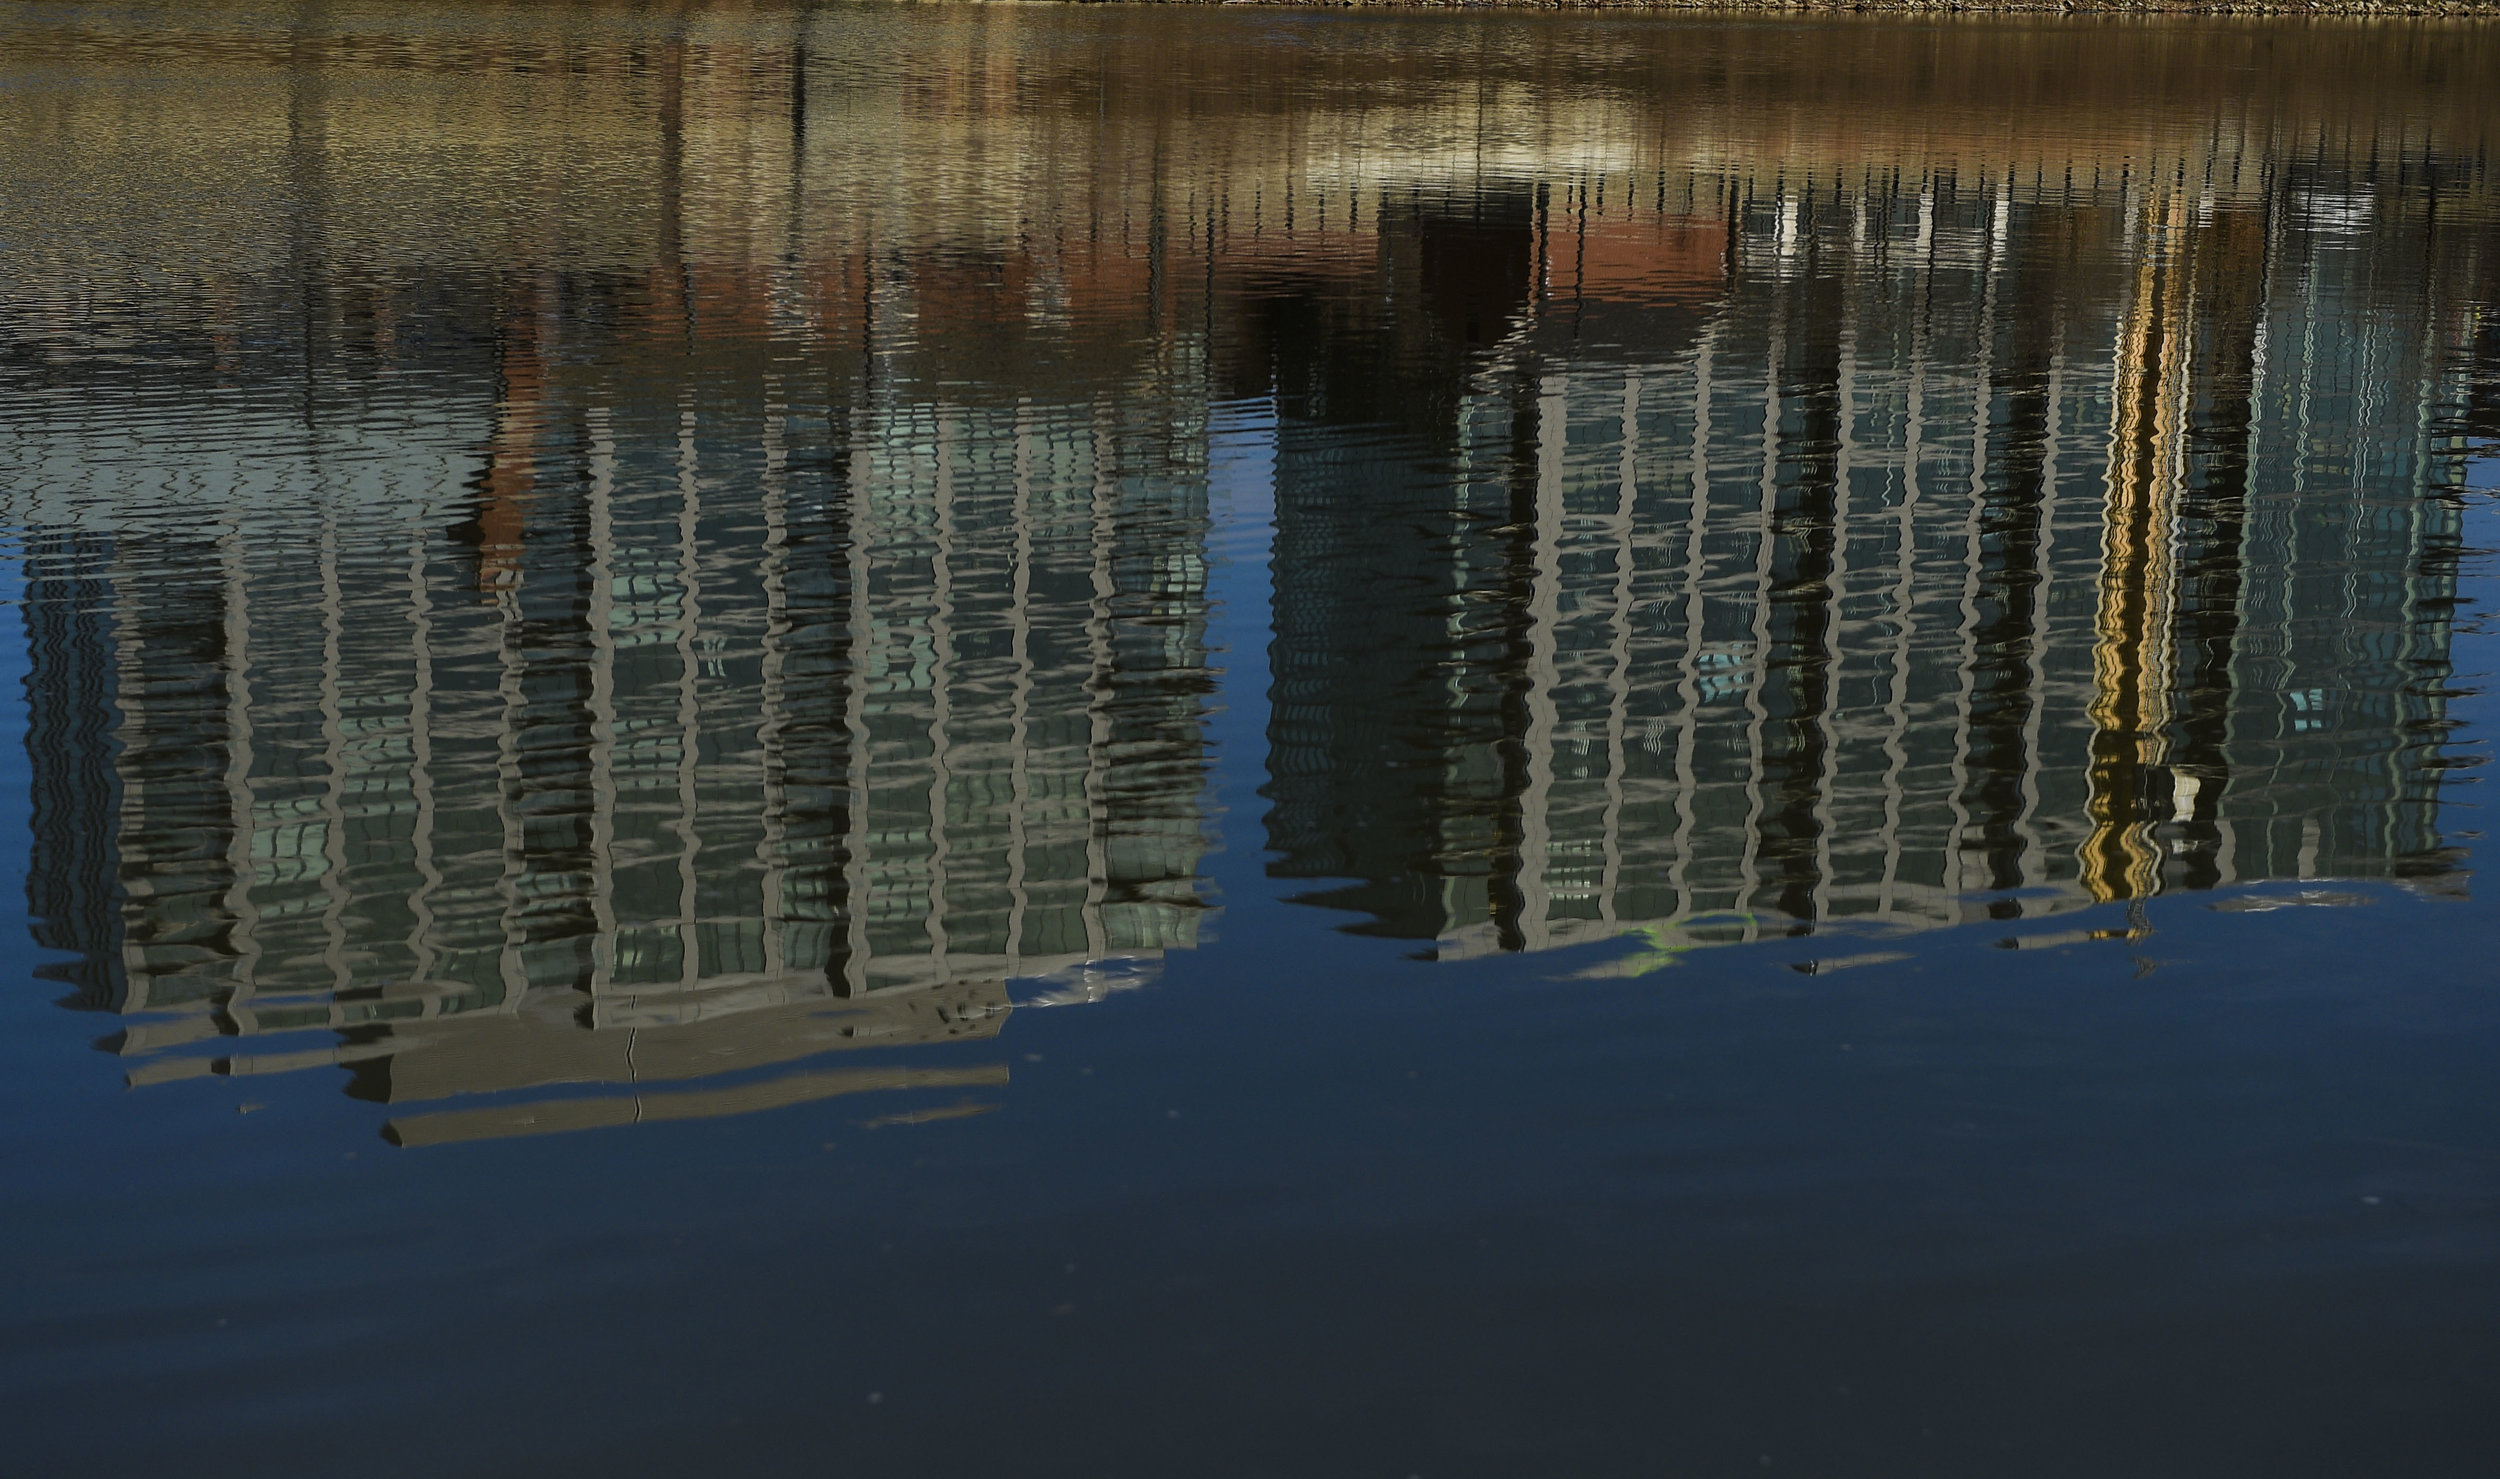 Newly built high rise apartments are reflected in the waters of the Scioto near Confluence Park in Downtown Columbus, Ohio.